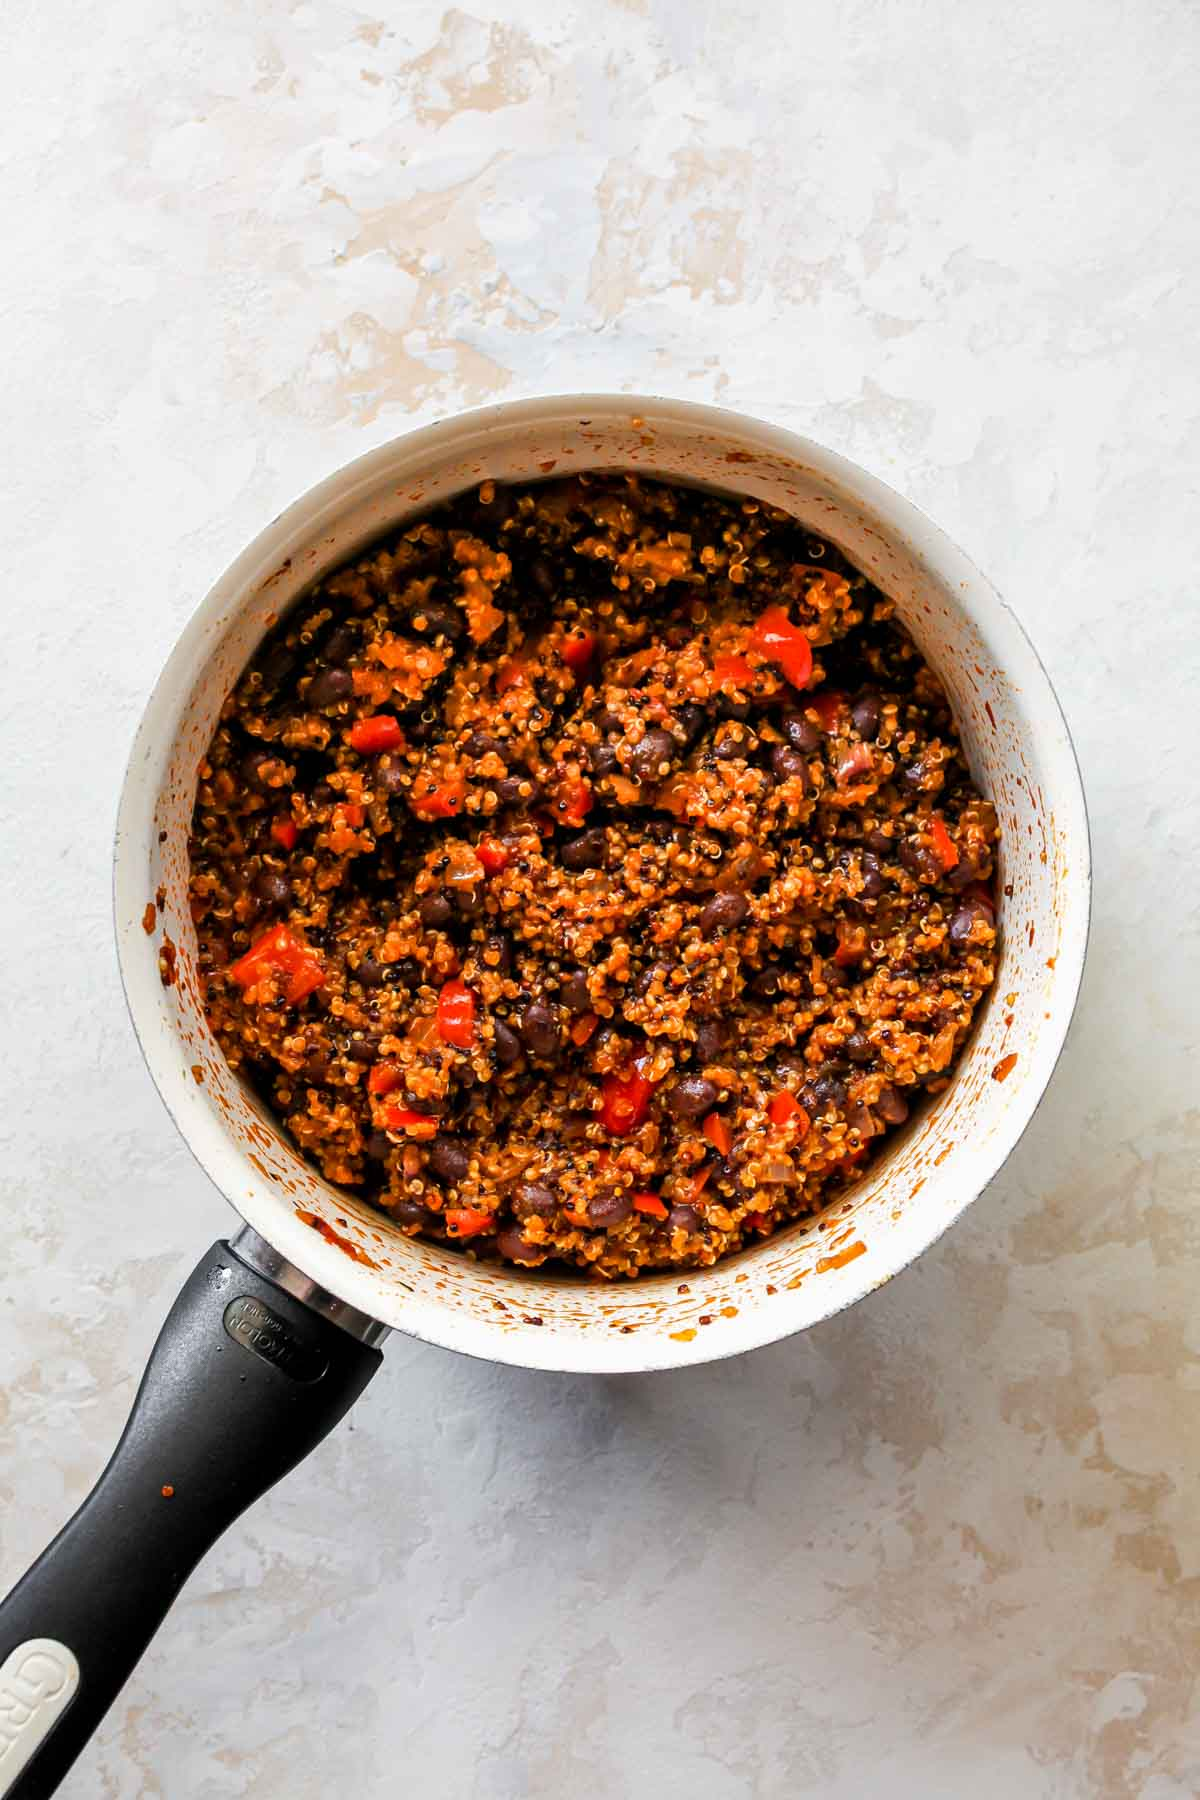 Black beans being stirred into a saucepan filled with quinoa